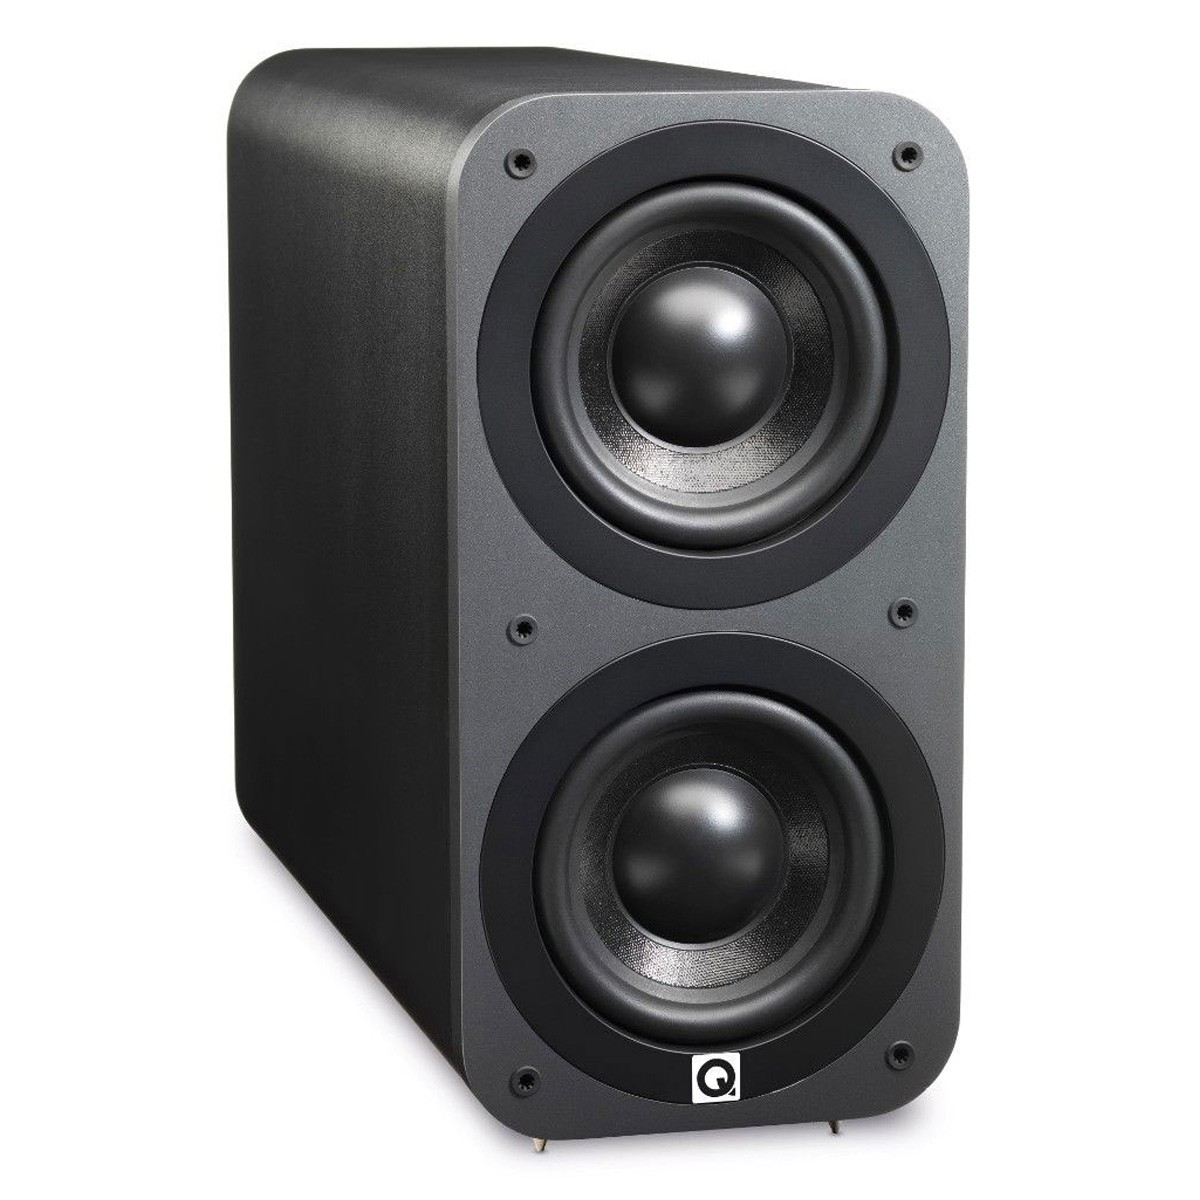 Q ACOUSTICS 3070S Active Subwoofer 140W